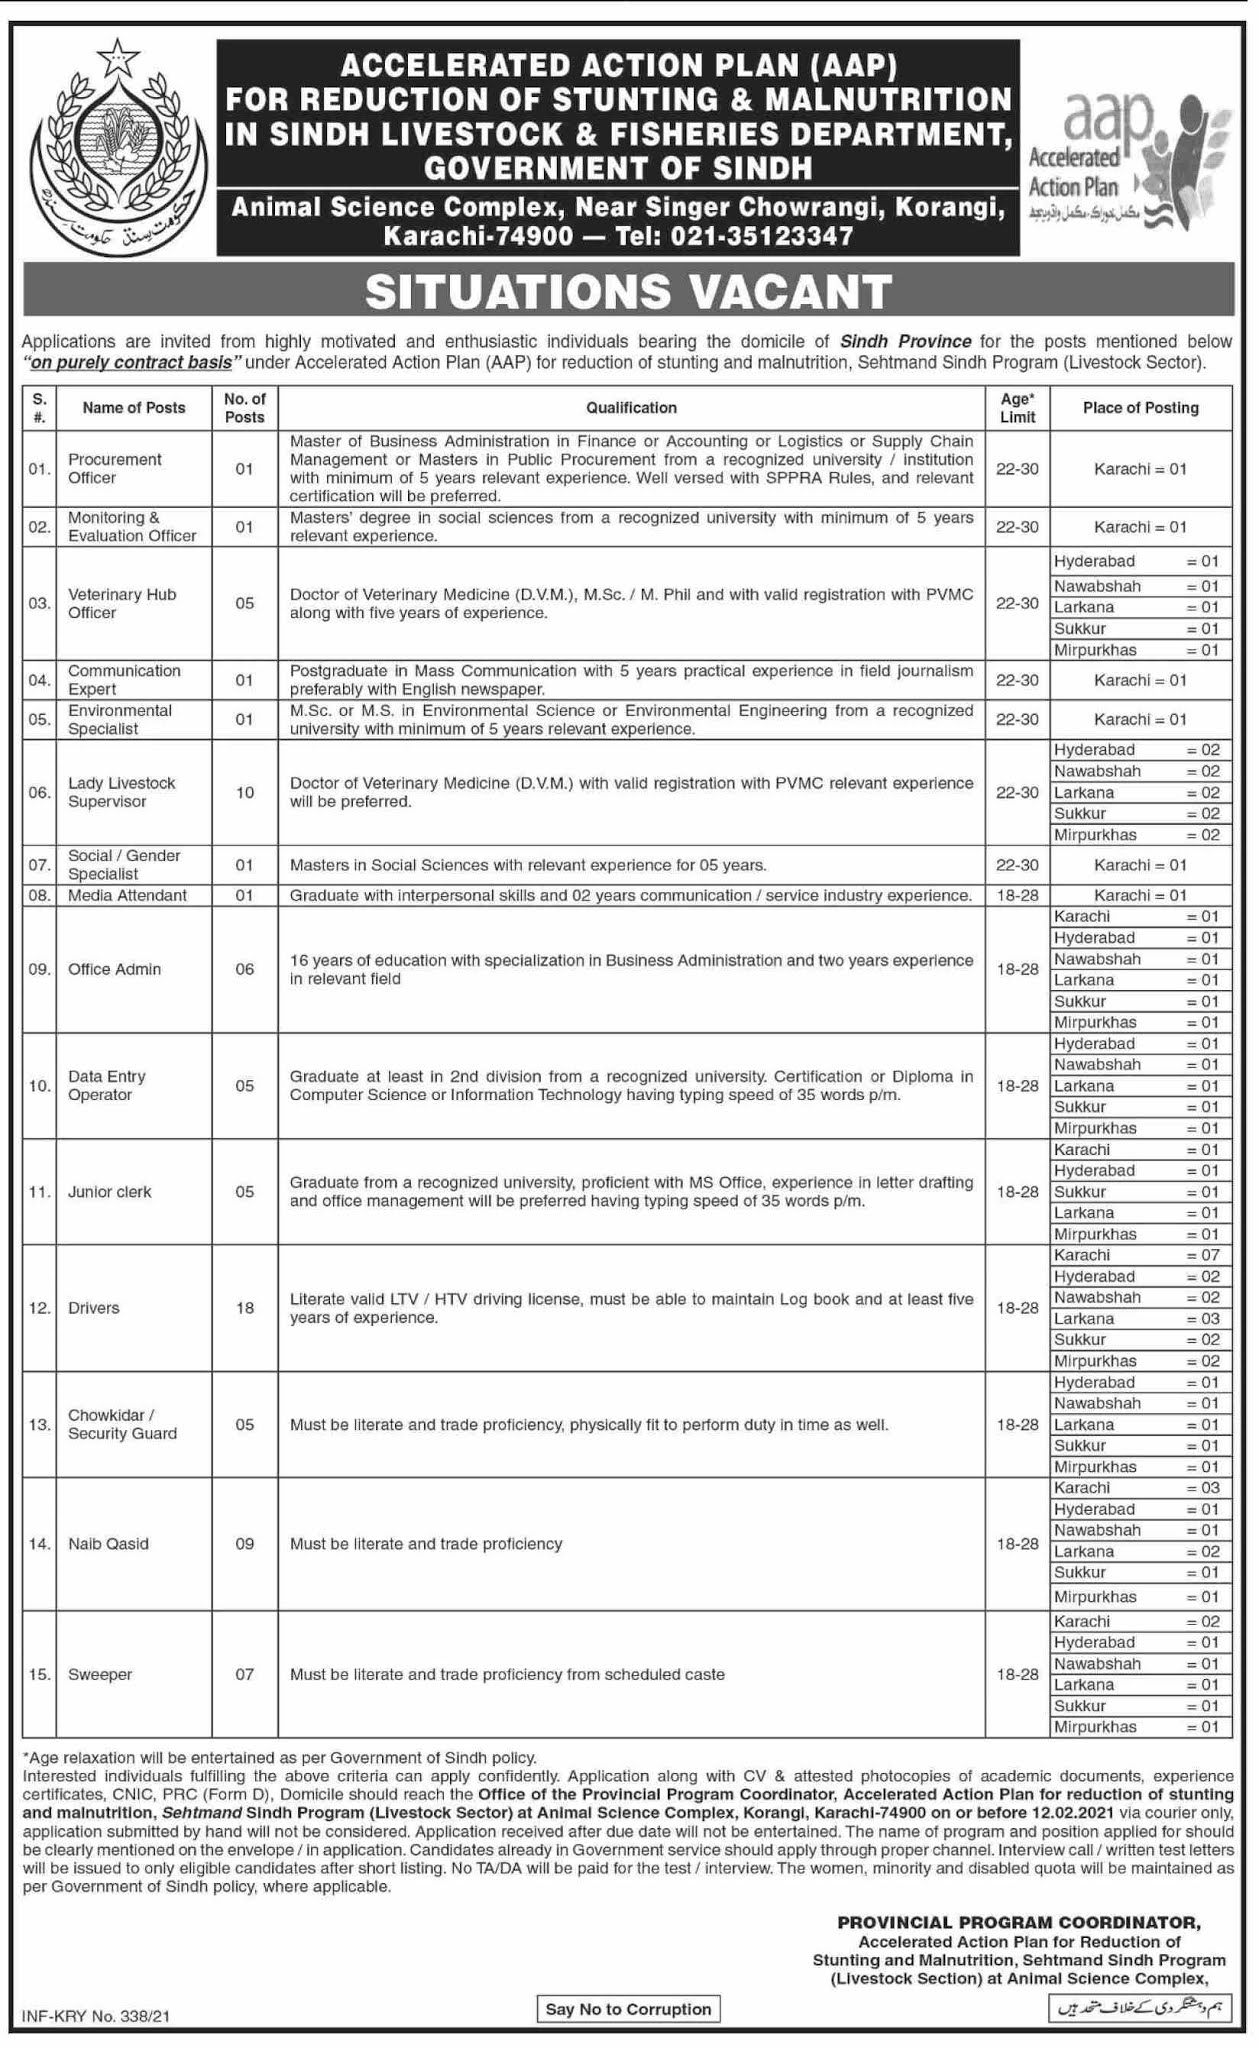 Accelerated Action Plan AAP Jobs 2021 - Sindh Livestock & Fisheries Department Jobs 2021 - Latest Govt Jobs 2021 - Jobs in Sindh 2021